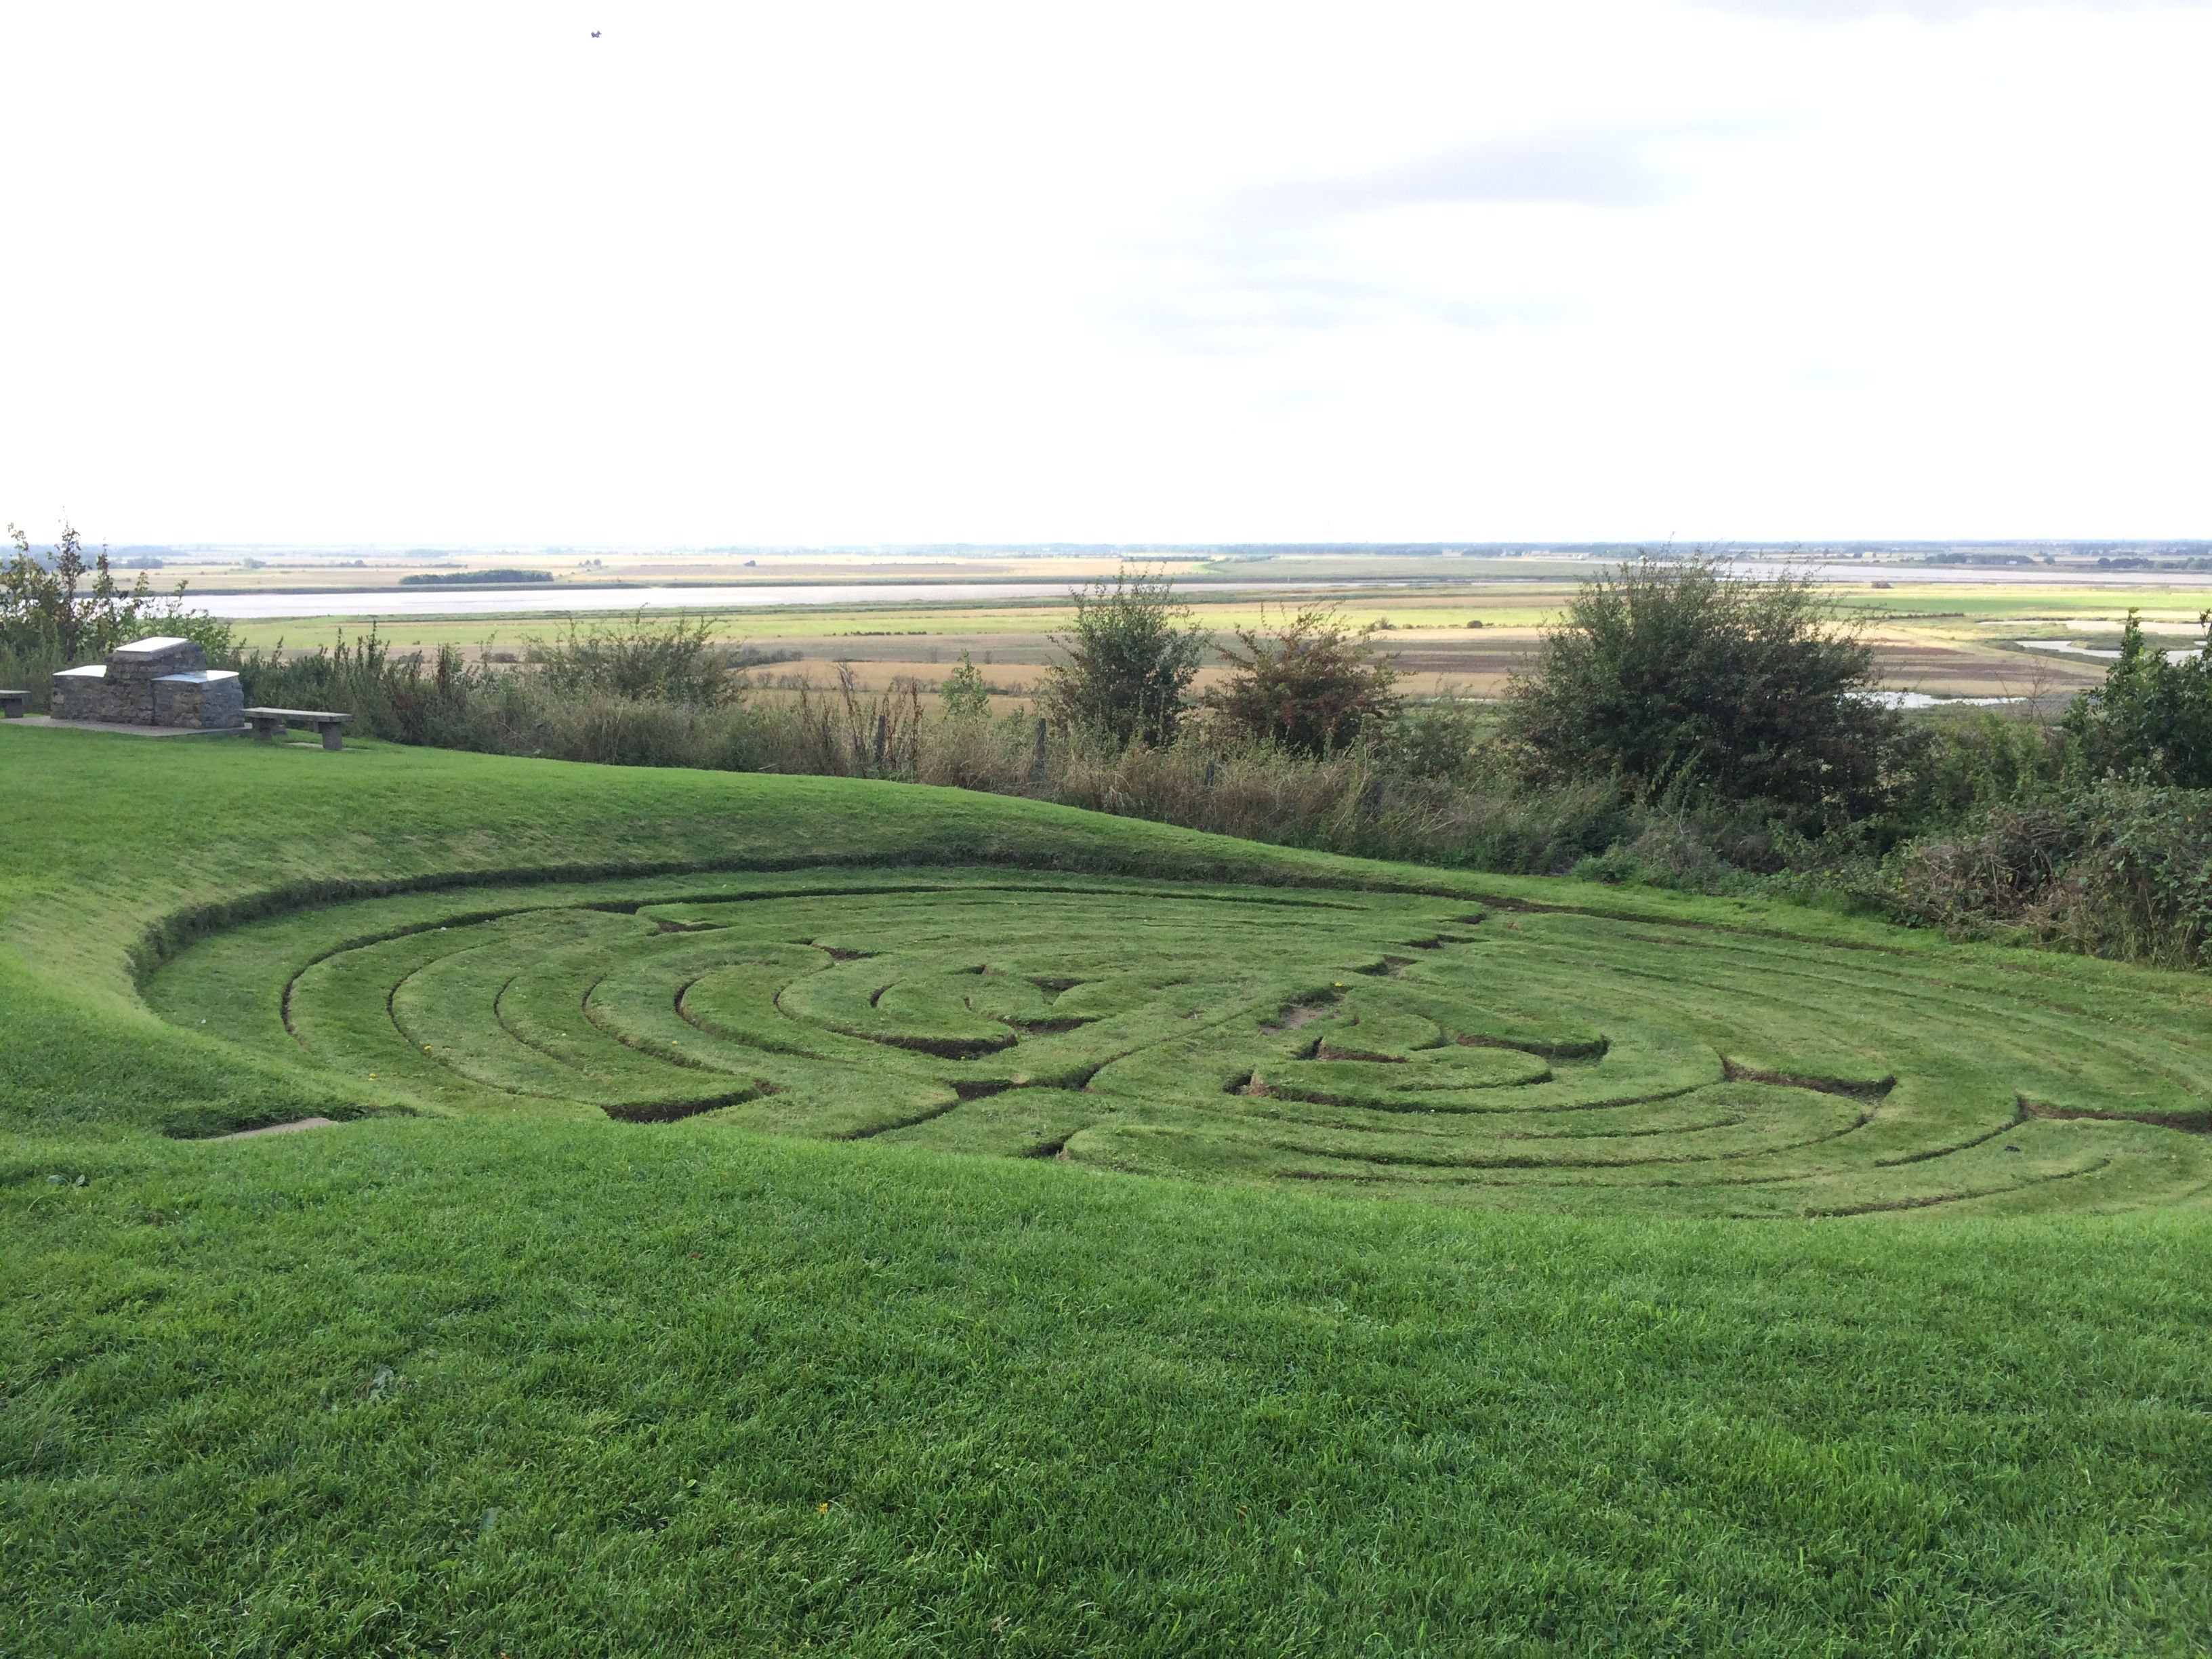 The ancient labyrinth, Julian's Bower, Alkborough